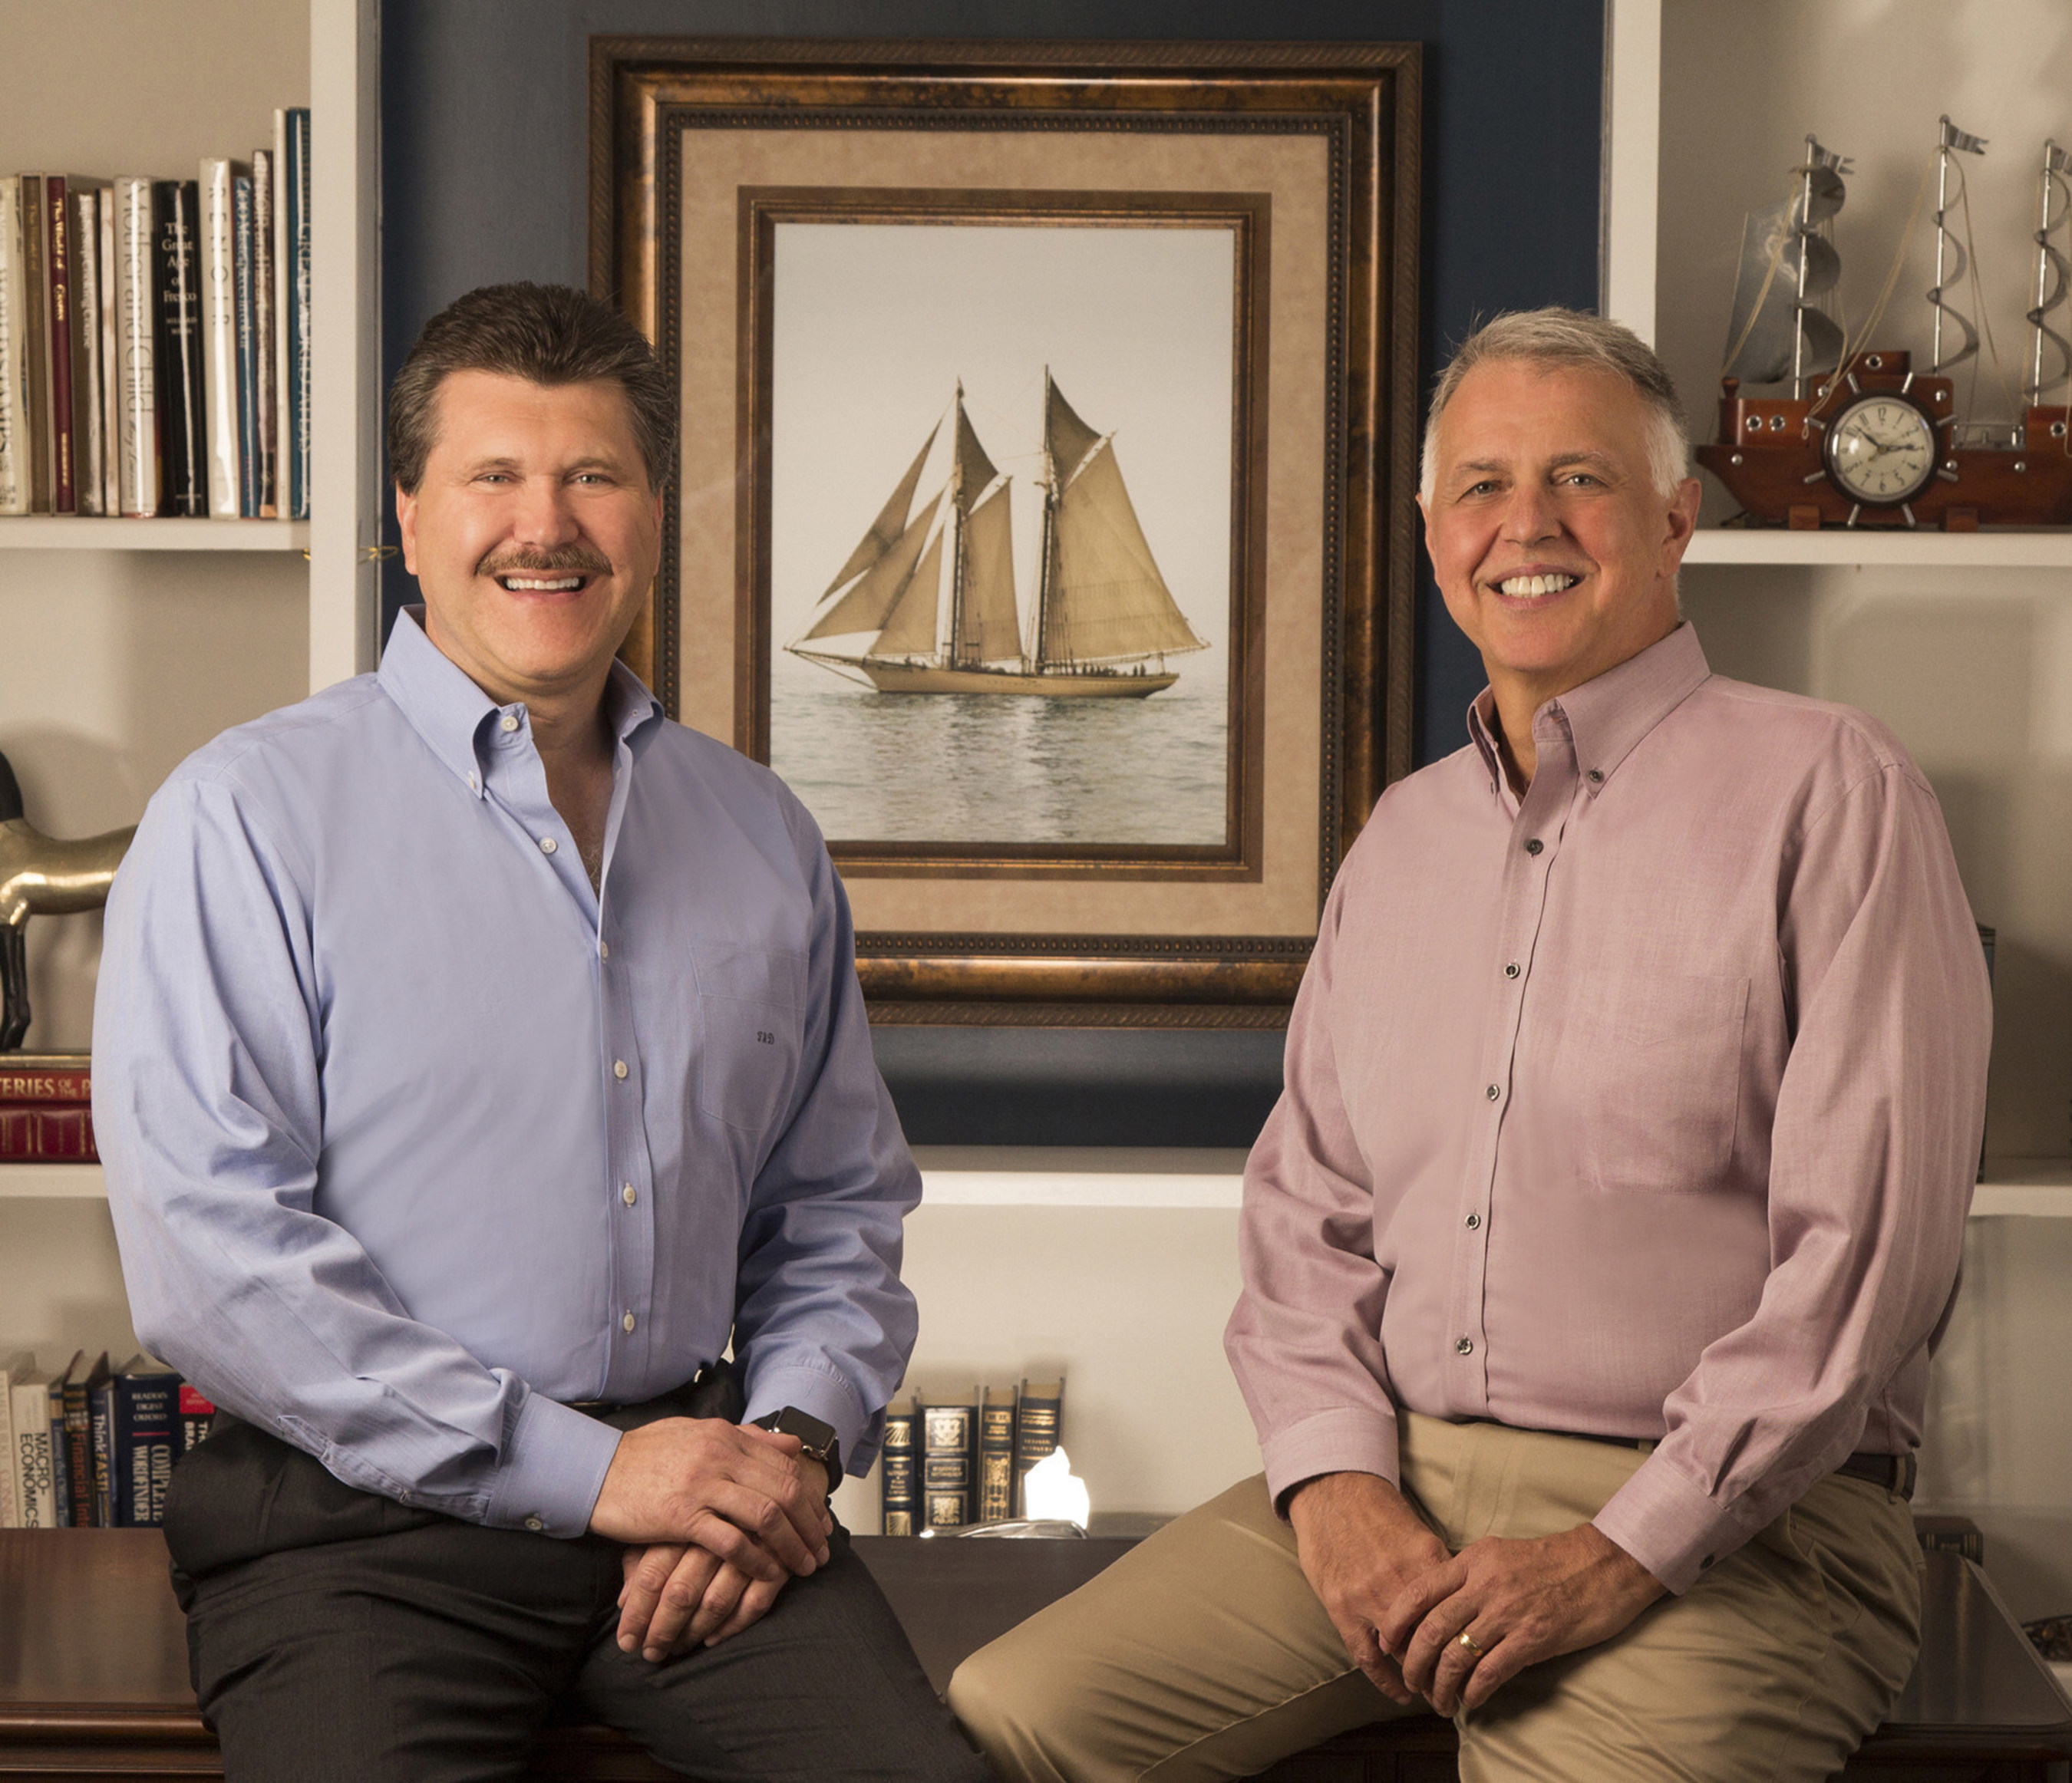 SW Safety Solutions Inc. Welcomes New Management Team to Lead Strategic Business Initiatives